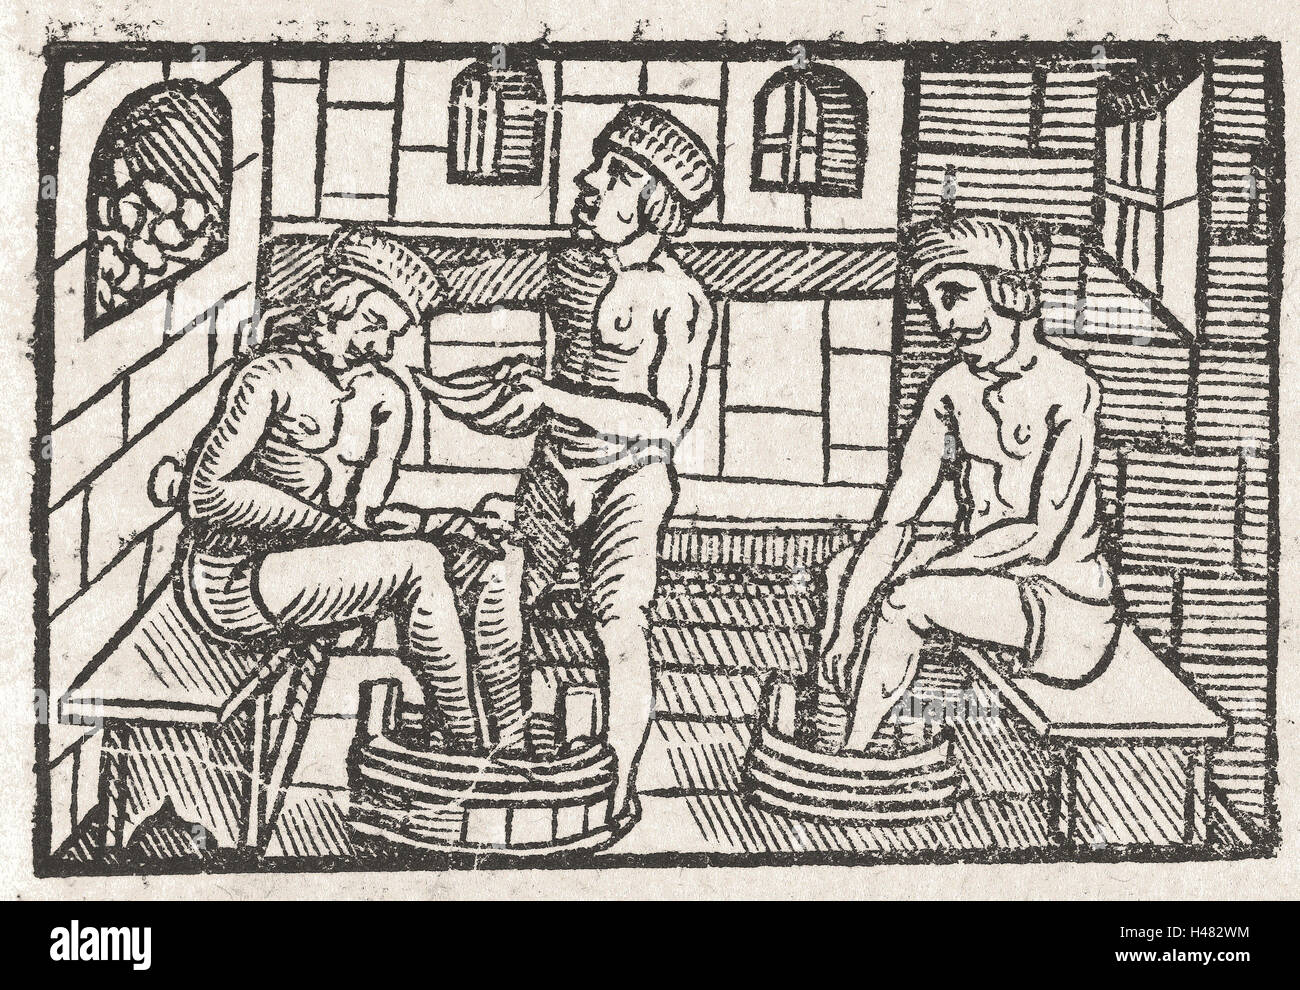 Woodcut illustration and text from book on anatomy - Stock Image